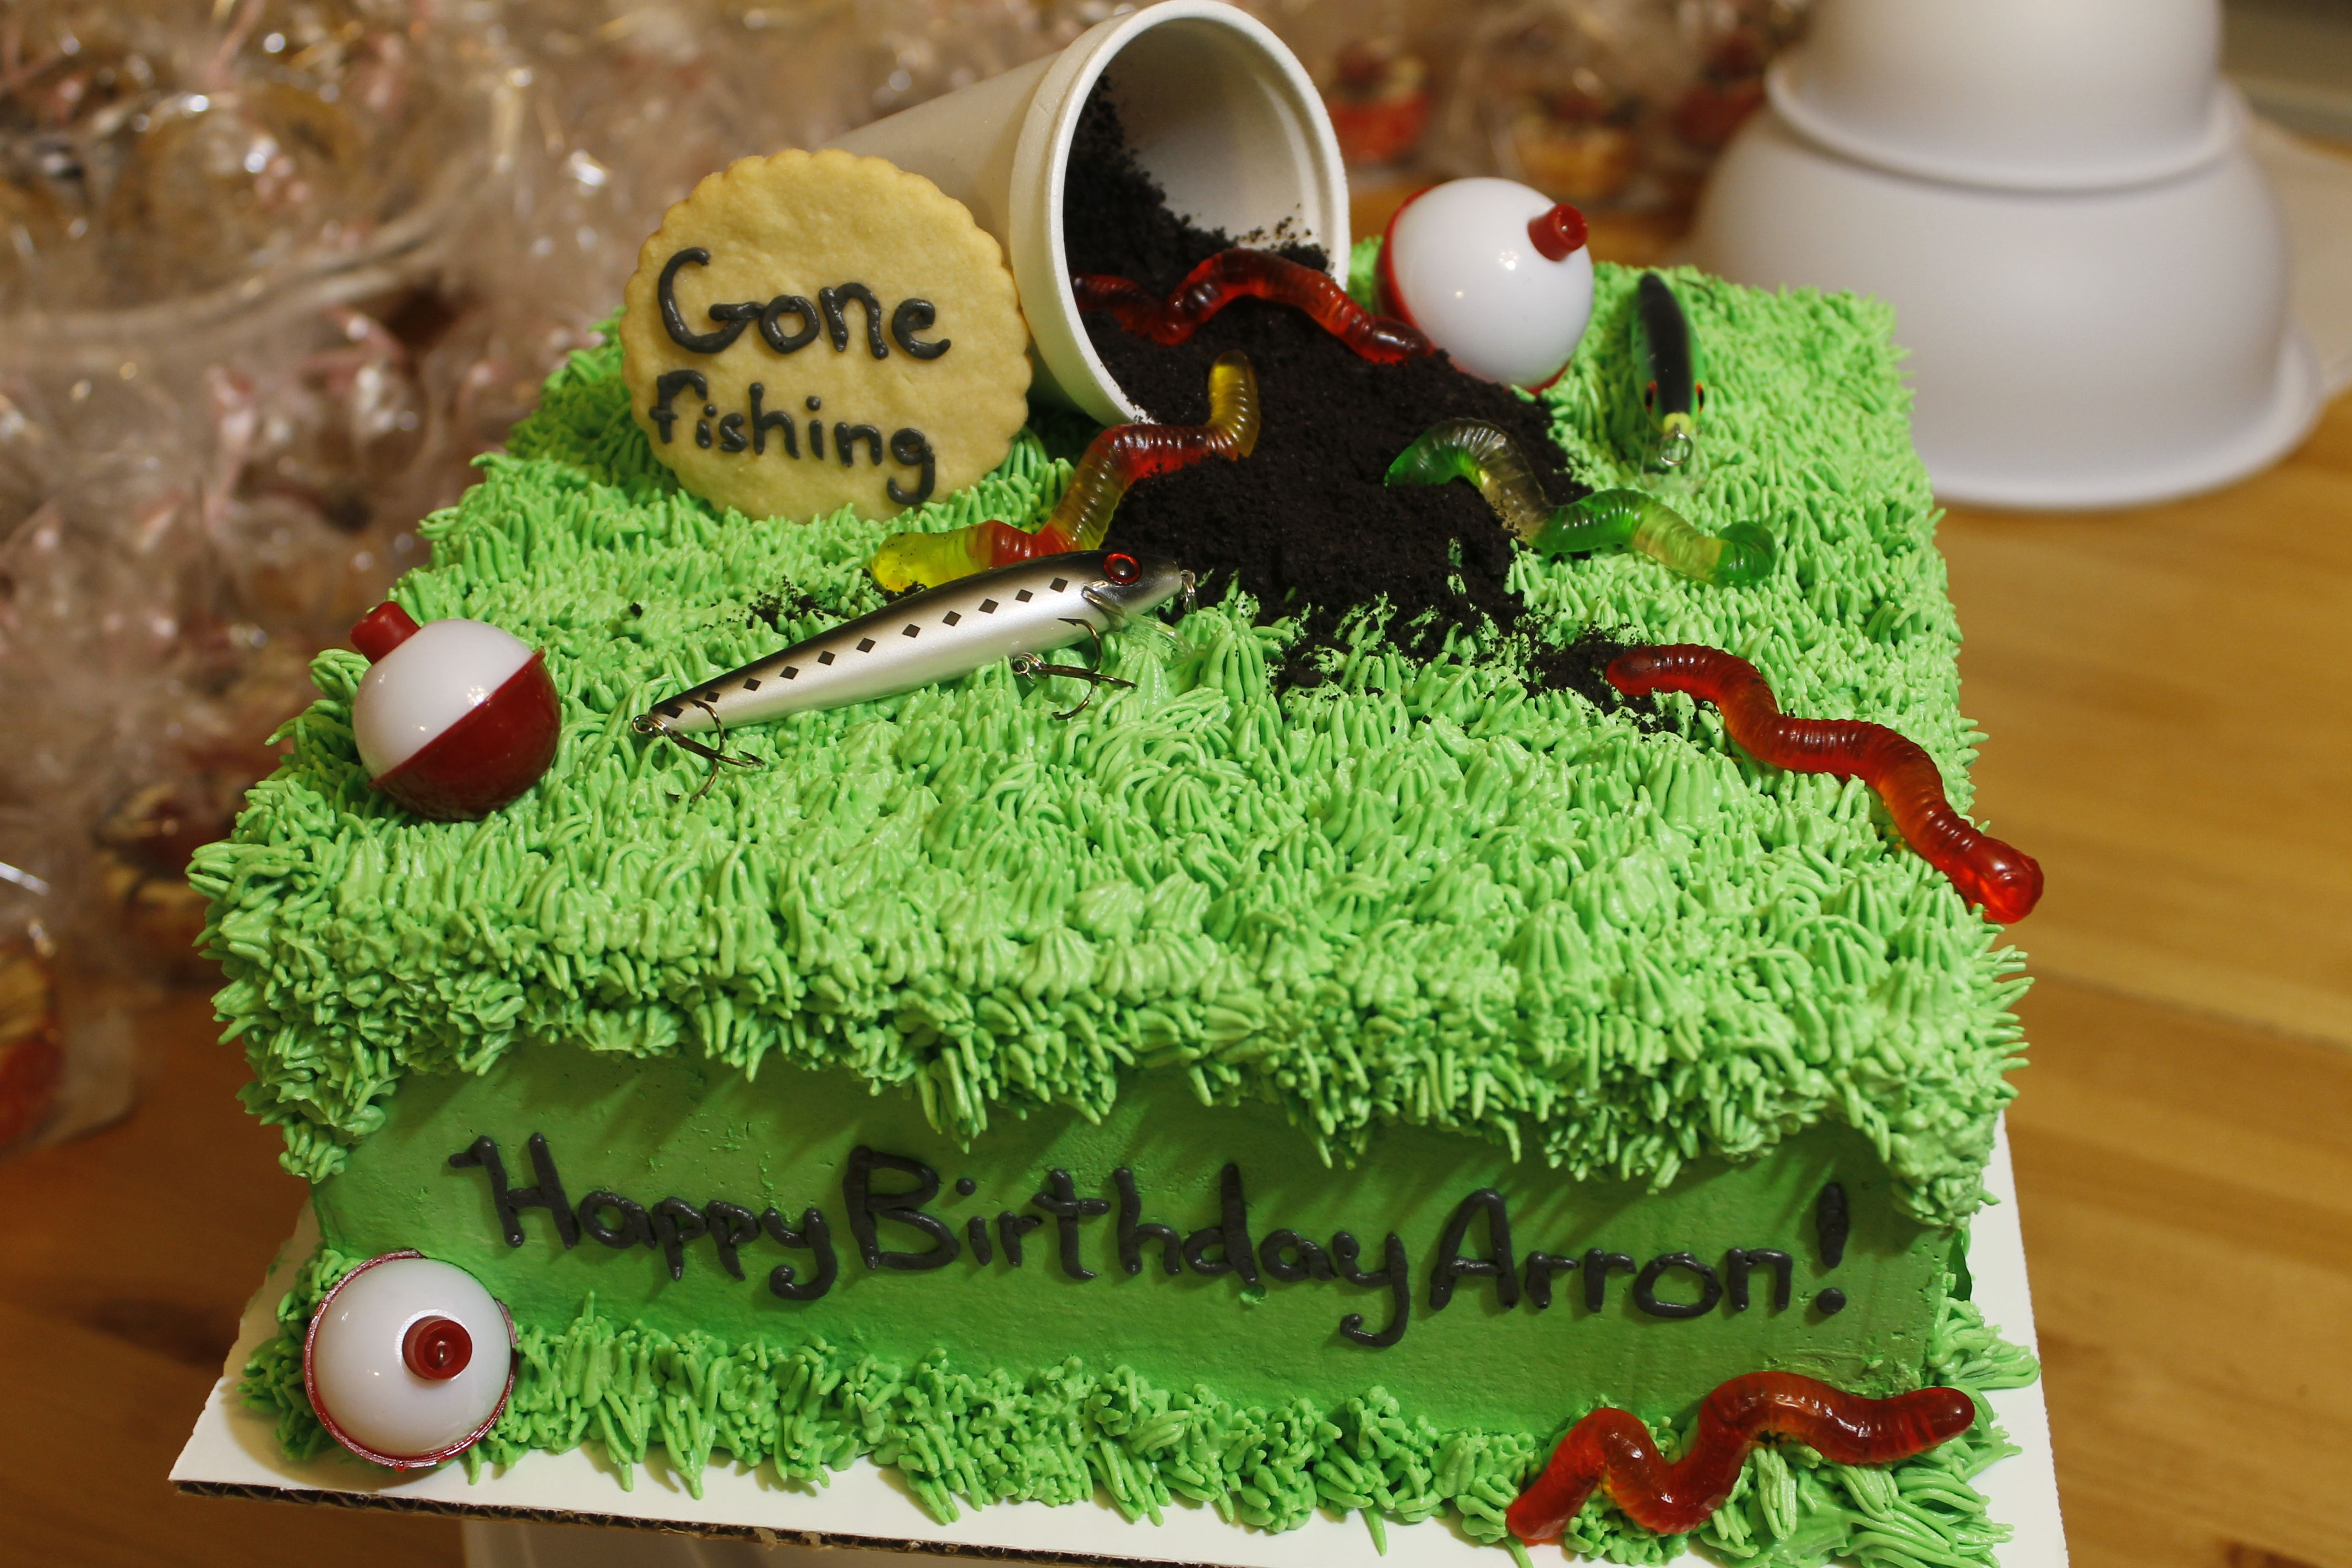 Pleasing Gone Fishing Birthday Cake For A Fishing Fan Birthday Cakes Personalised Birthday Cards Epsylily Jamesorg